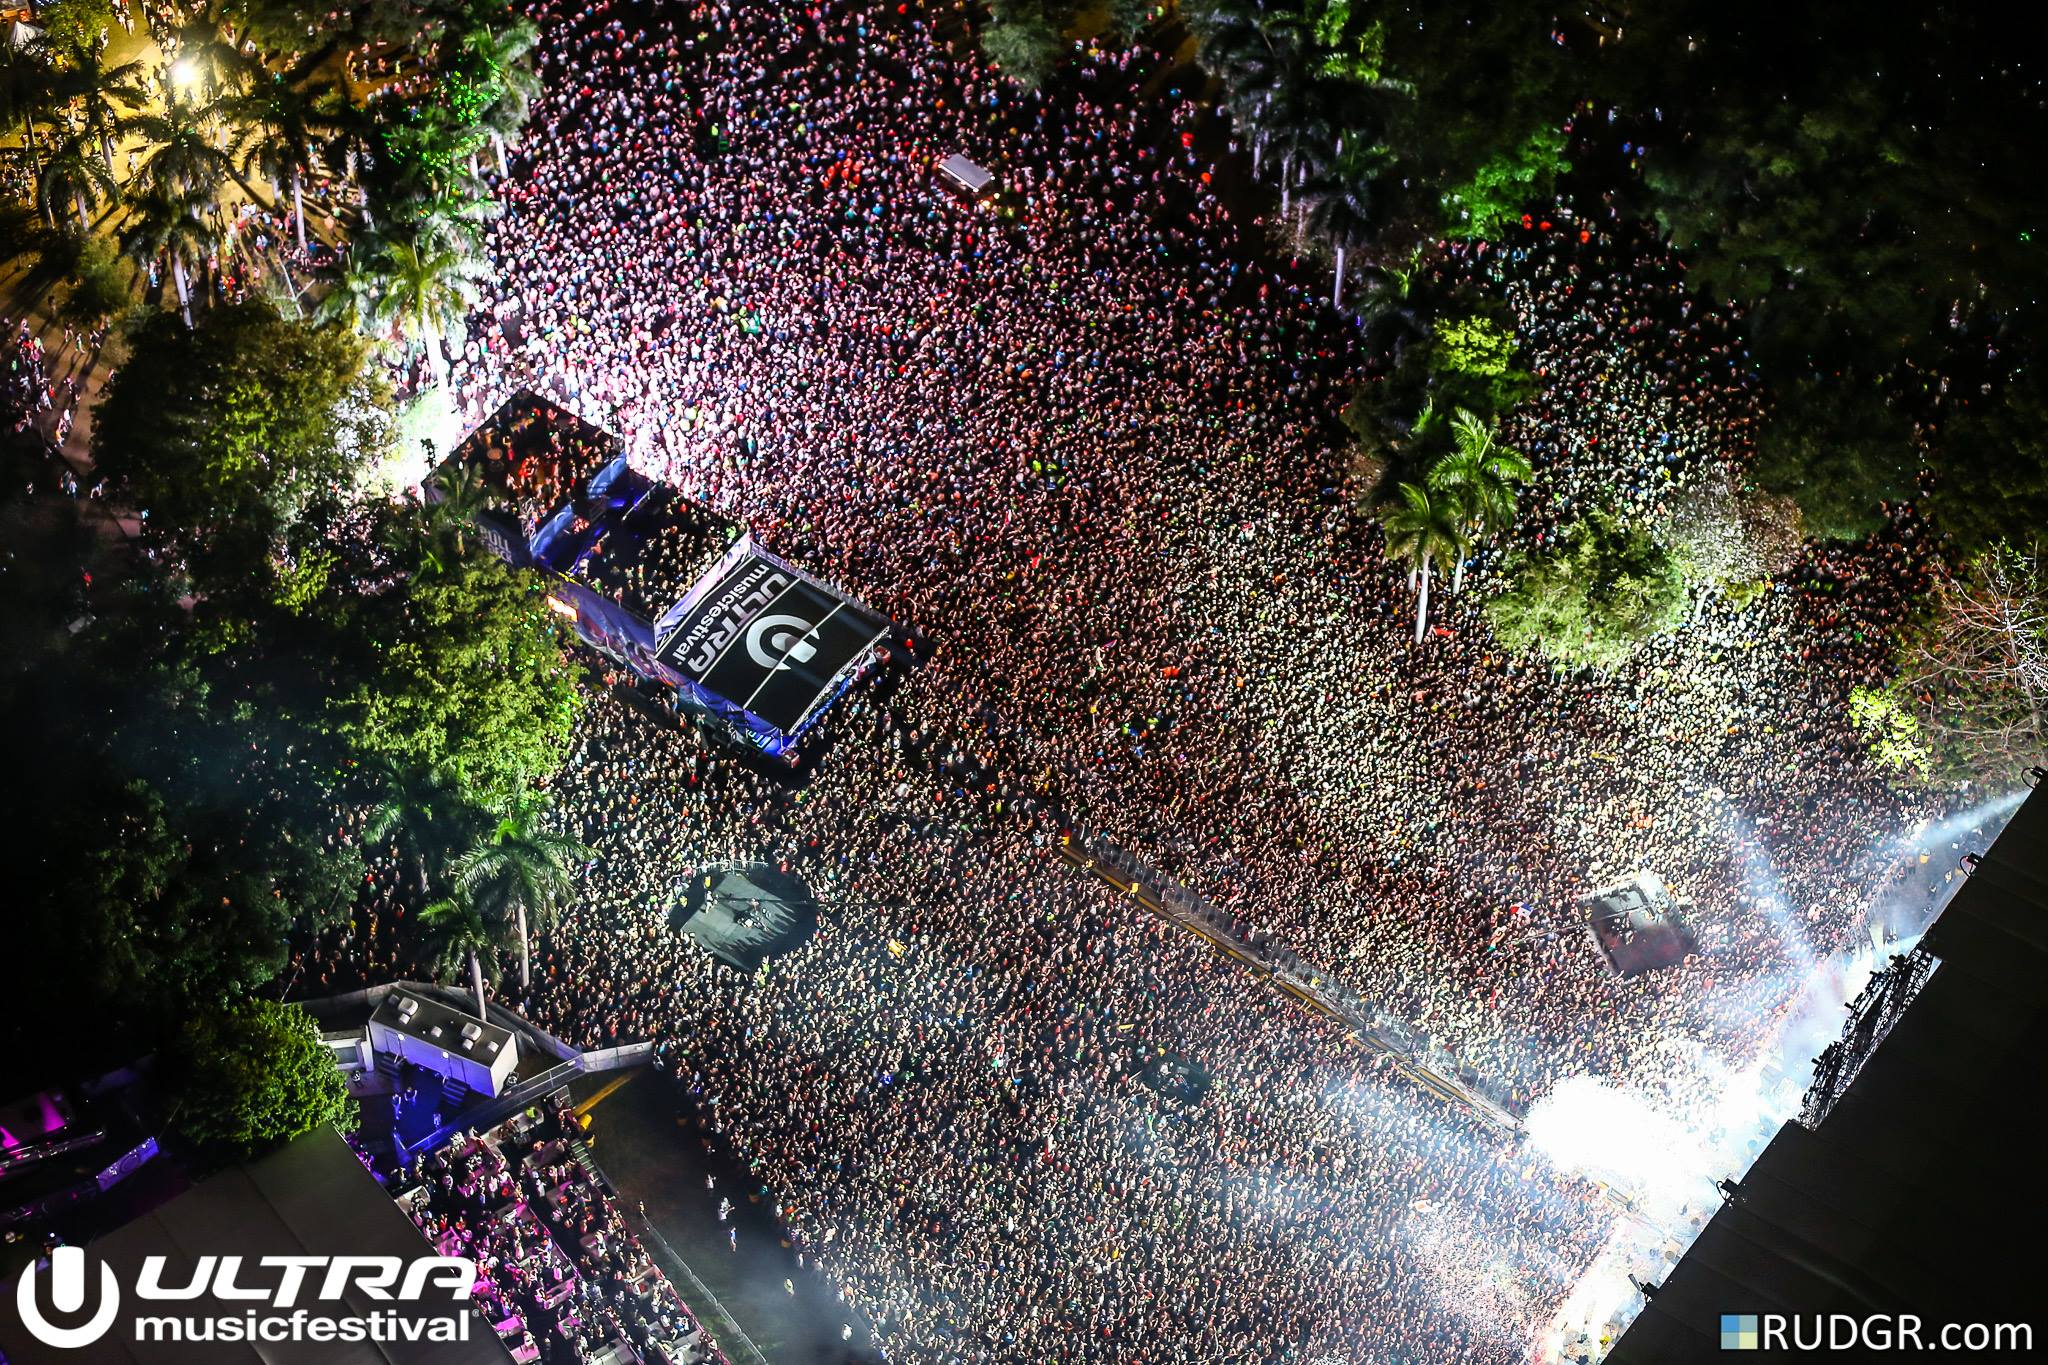 All the #Ultra2016 live sets and unreleased tracks you must hear